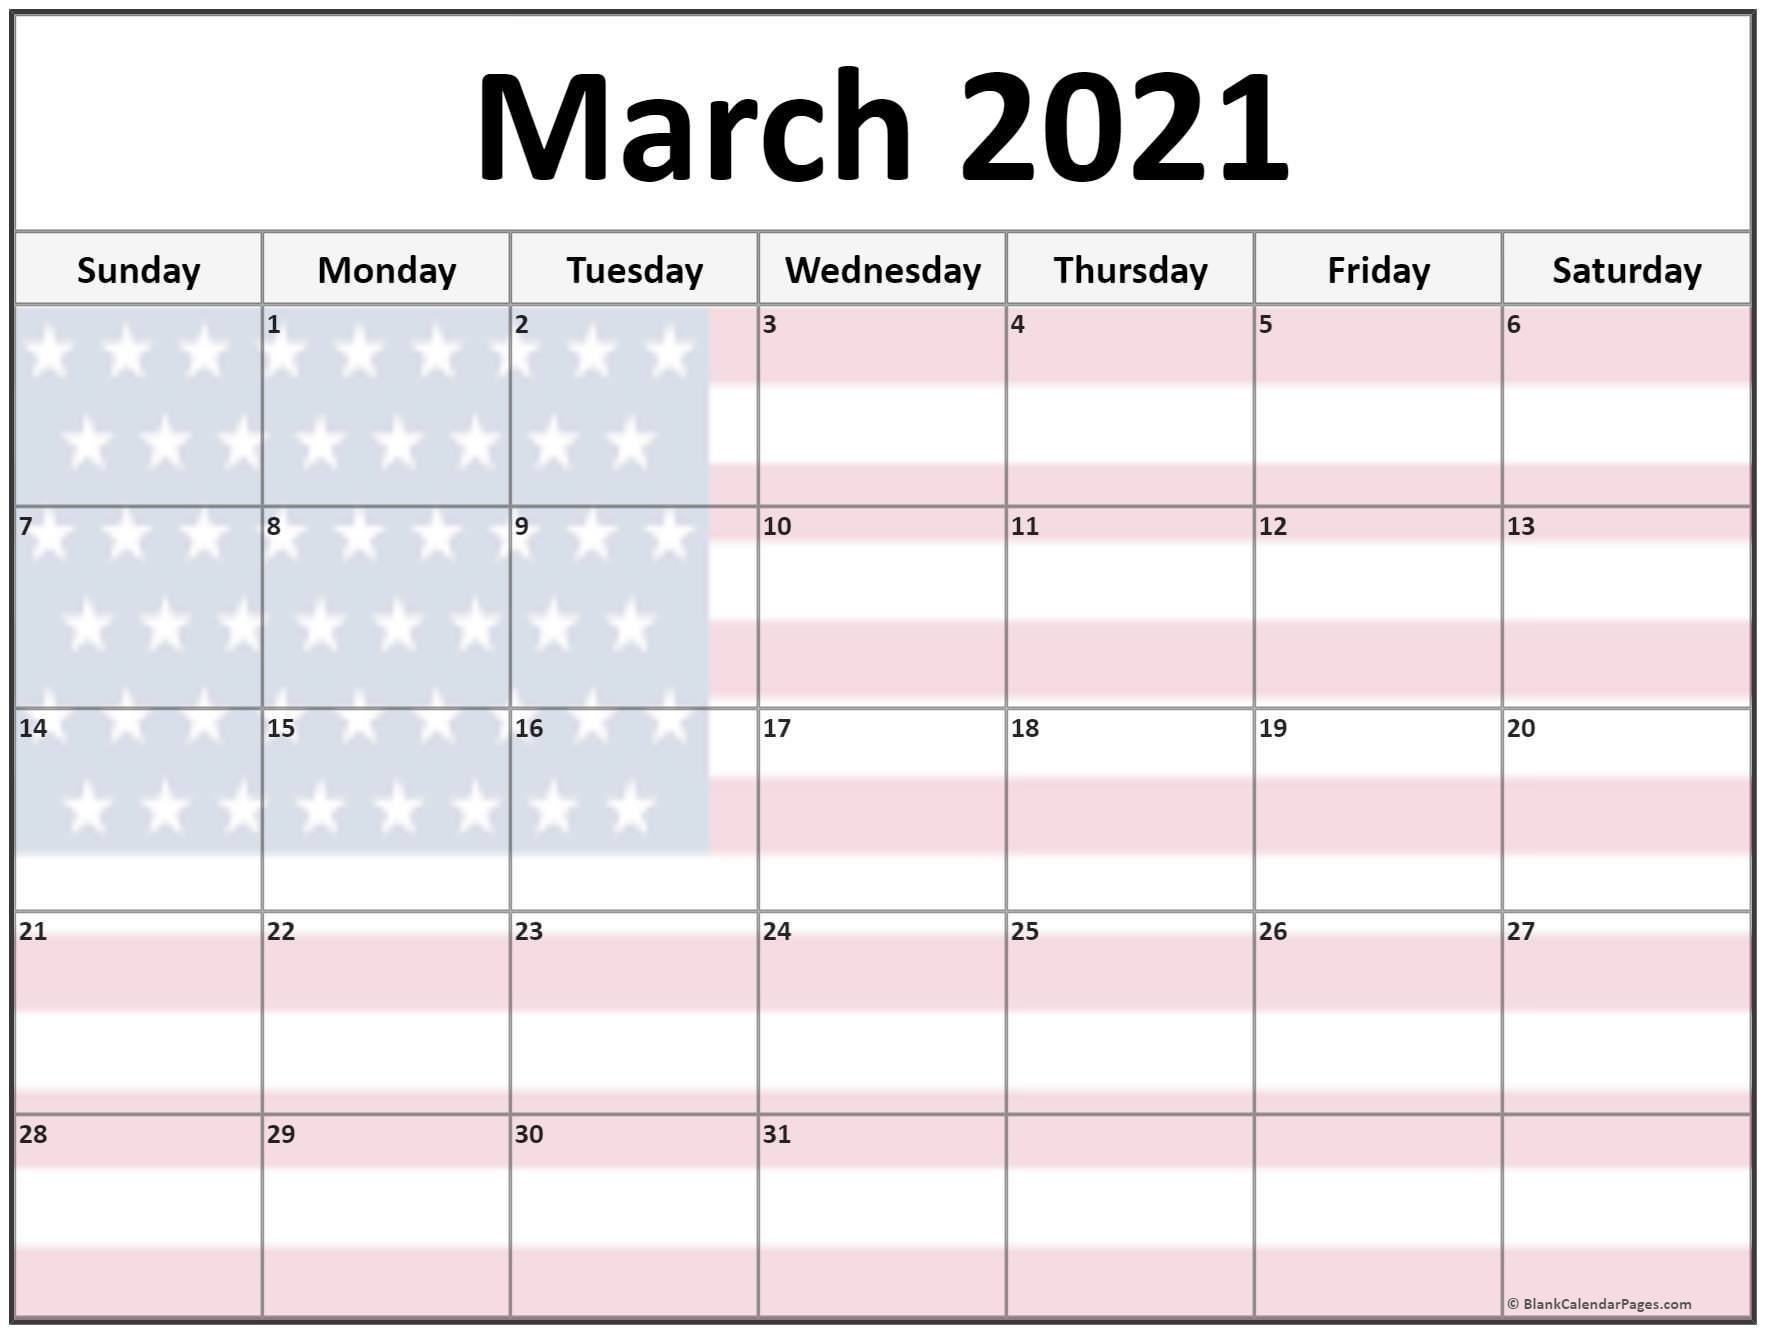 Collection Of March 2021 Photo Calendars With Image Filters. July 2021 Calendar Canada Printable